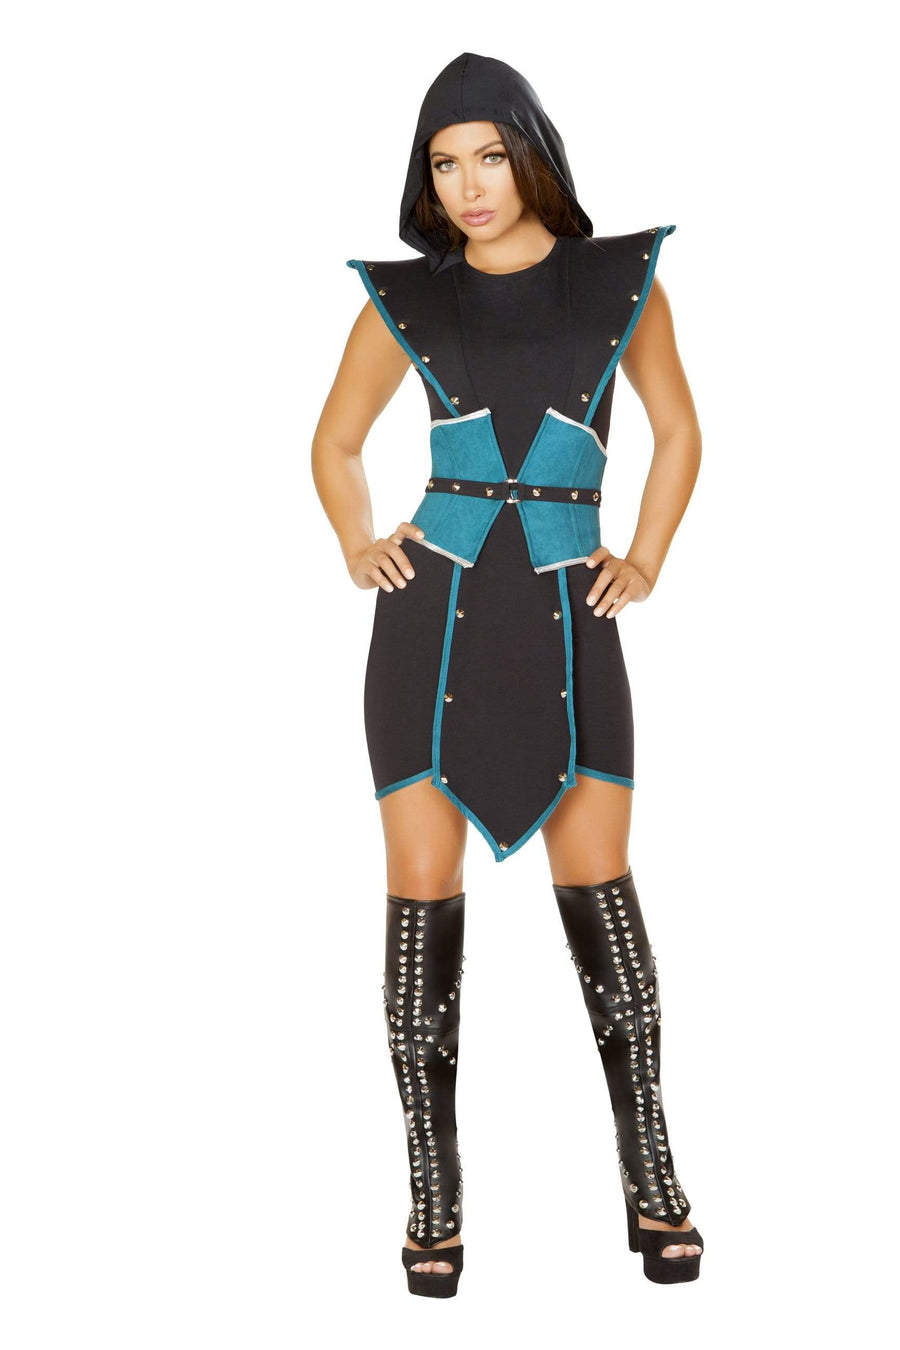 Roma Small / Black Emperors Guard Black w/ Blue Costume SHC-4840-S-R Apparel & Accessories > Costumes & Accessories > Costumes